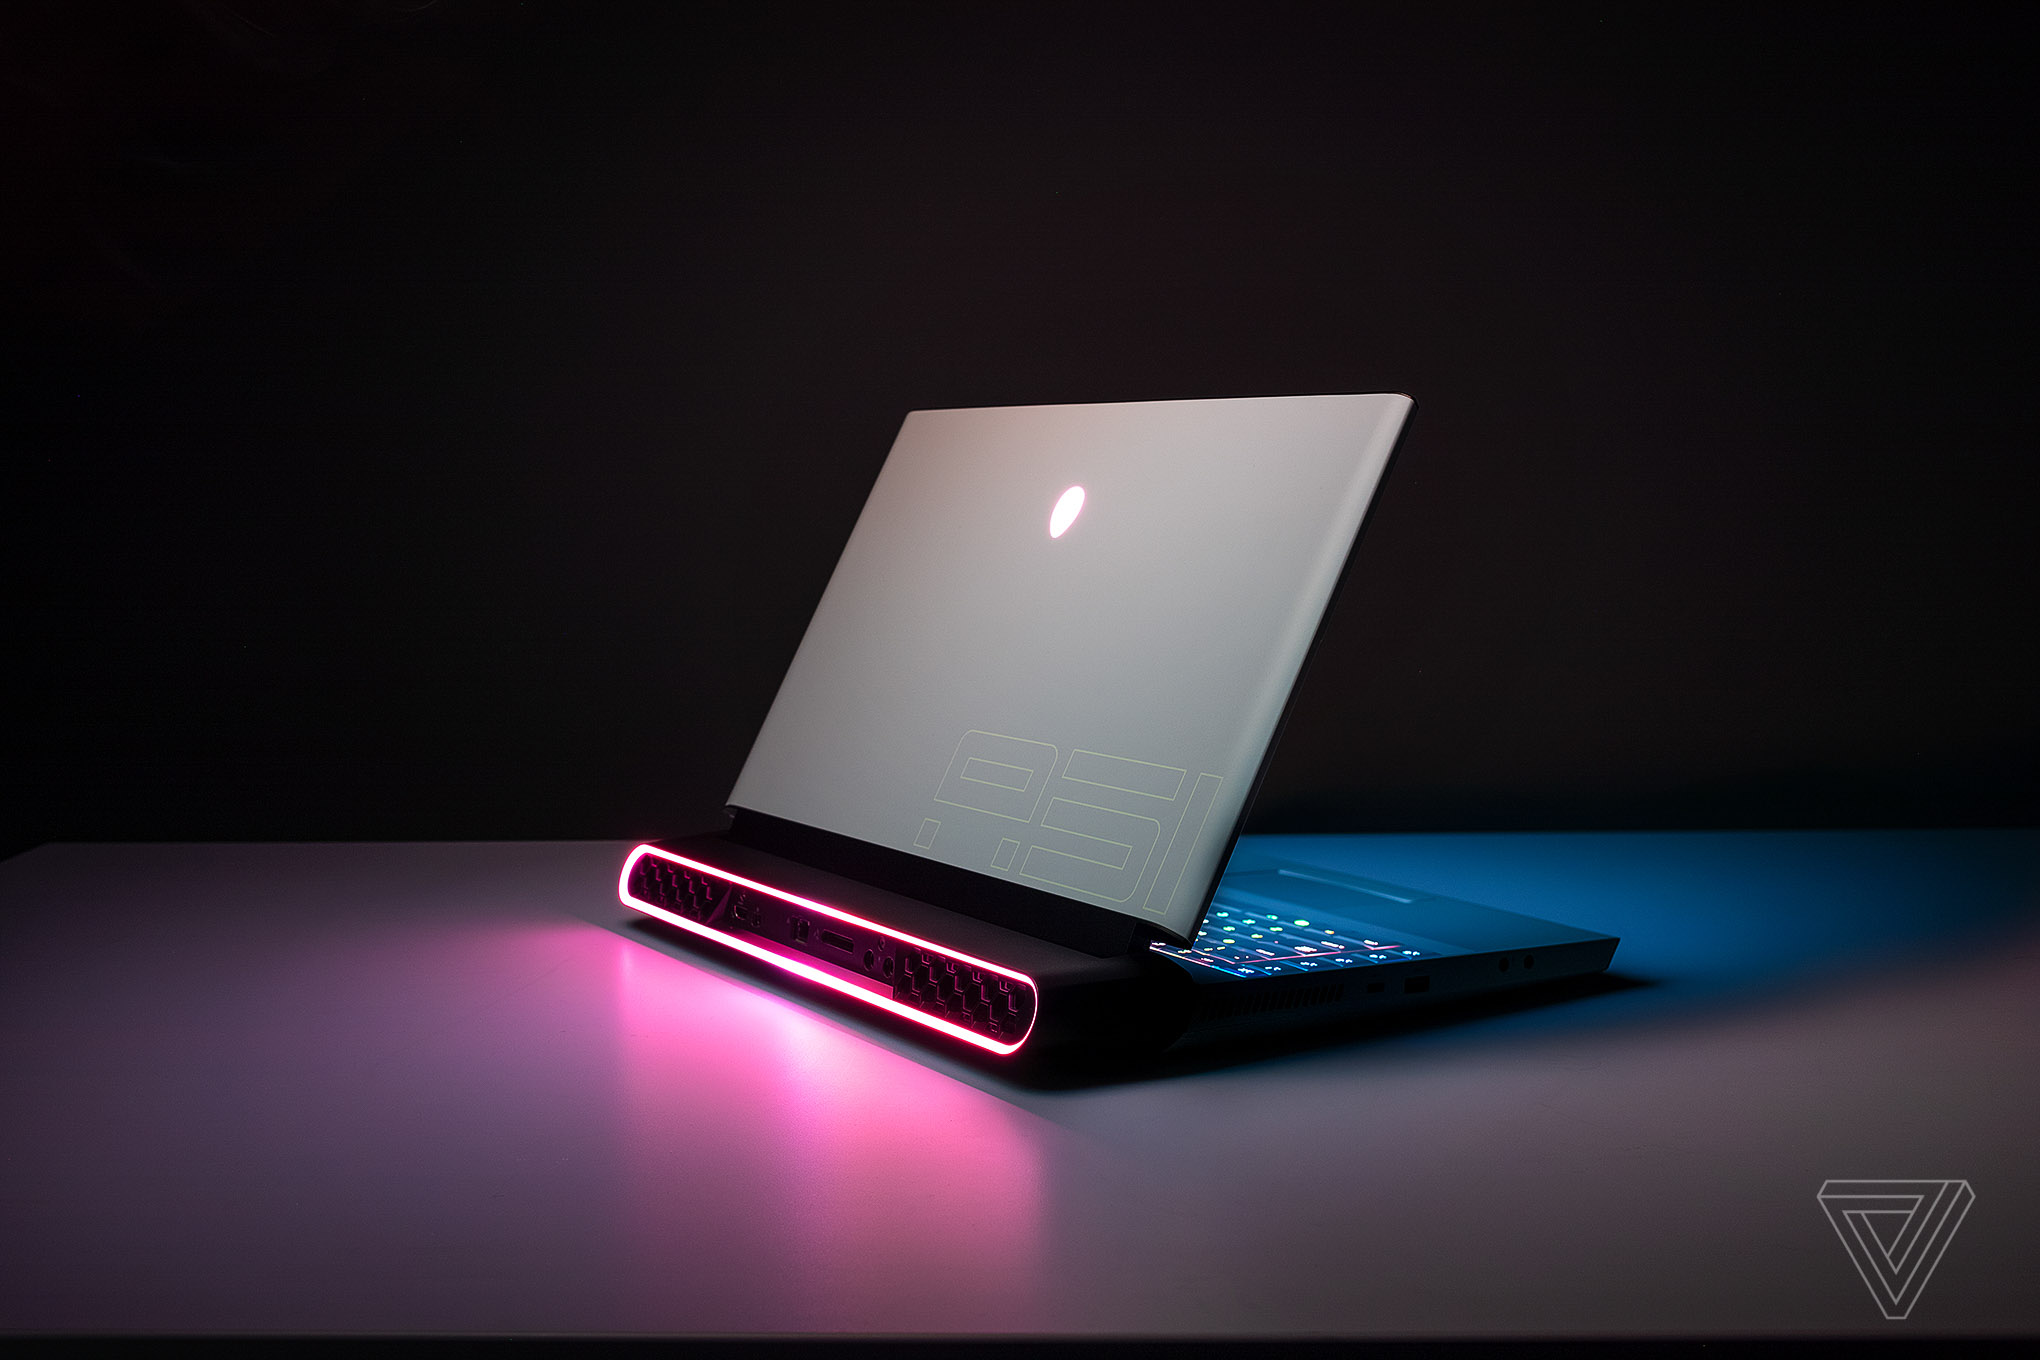 The Alienware Area-51m is a full-fledged desktop disguised